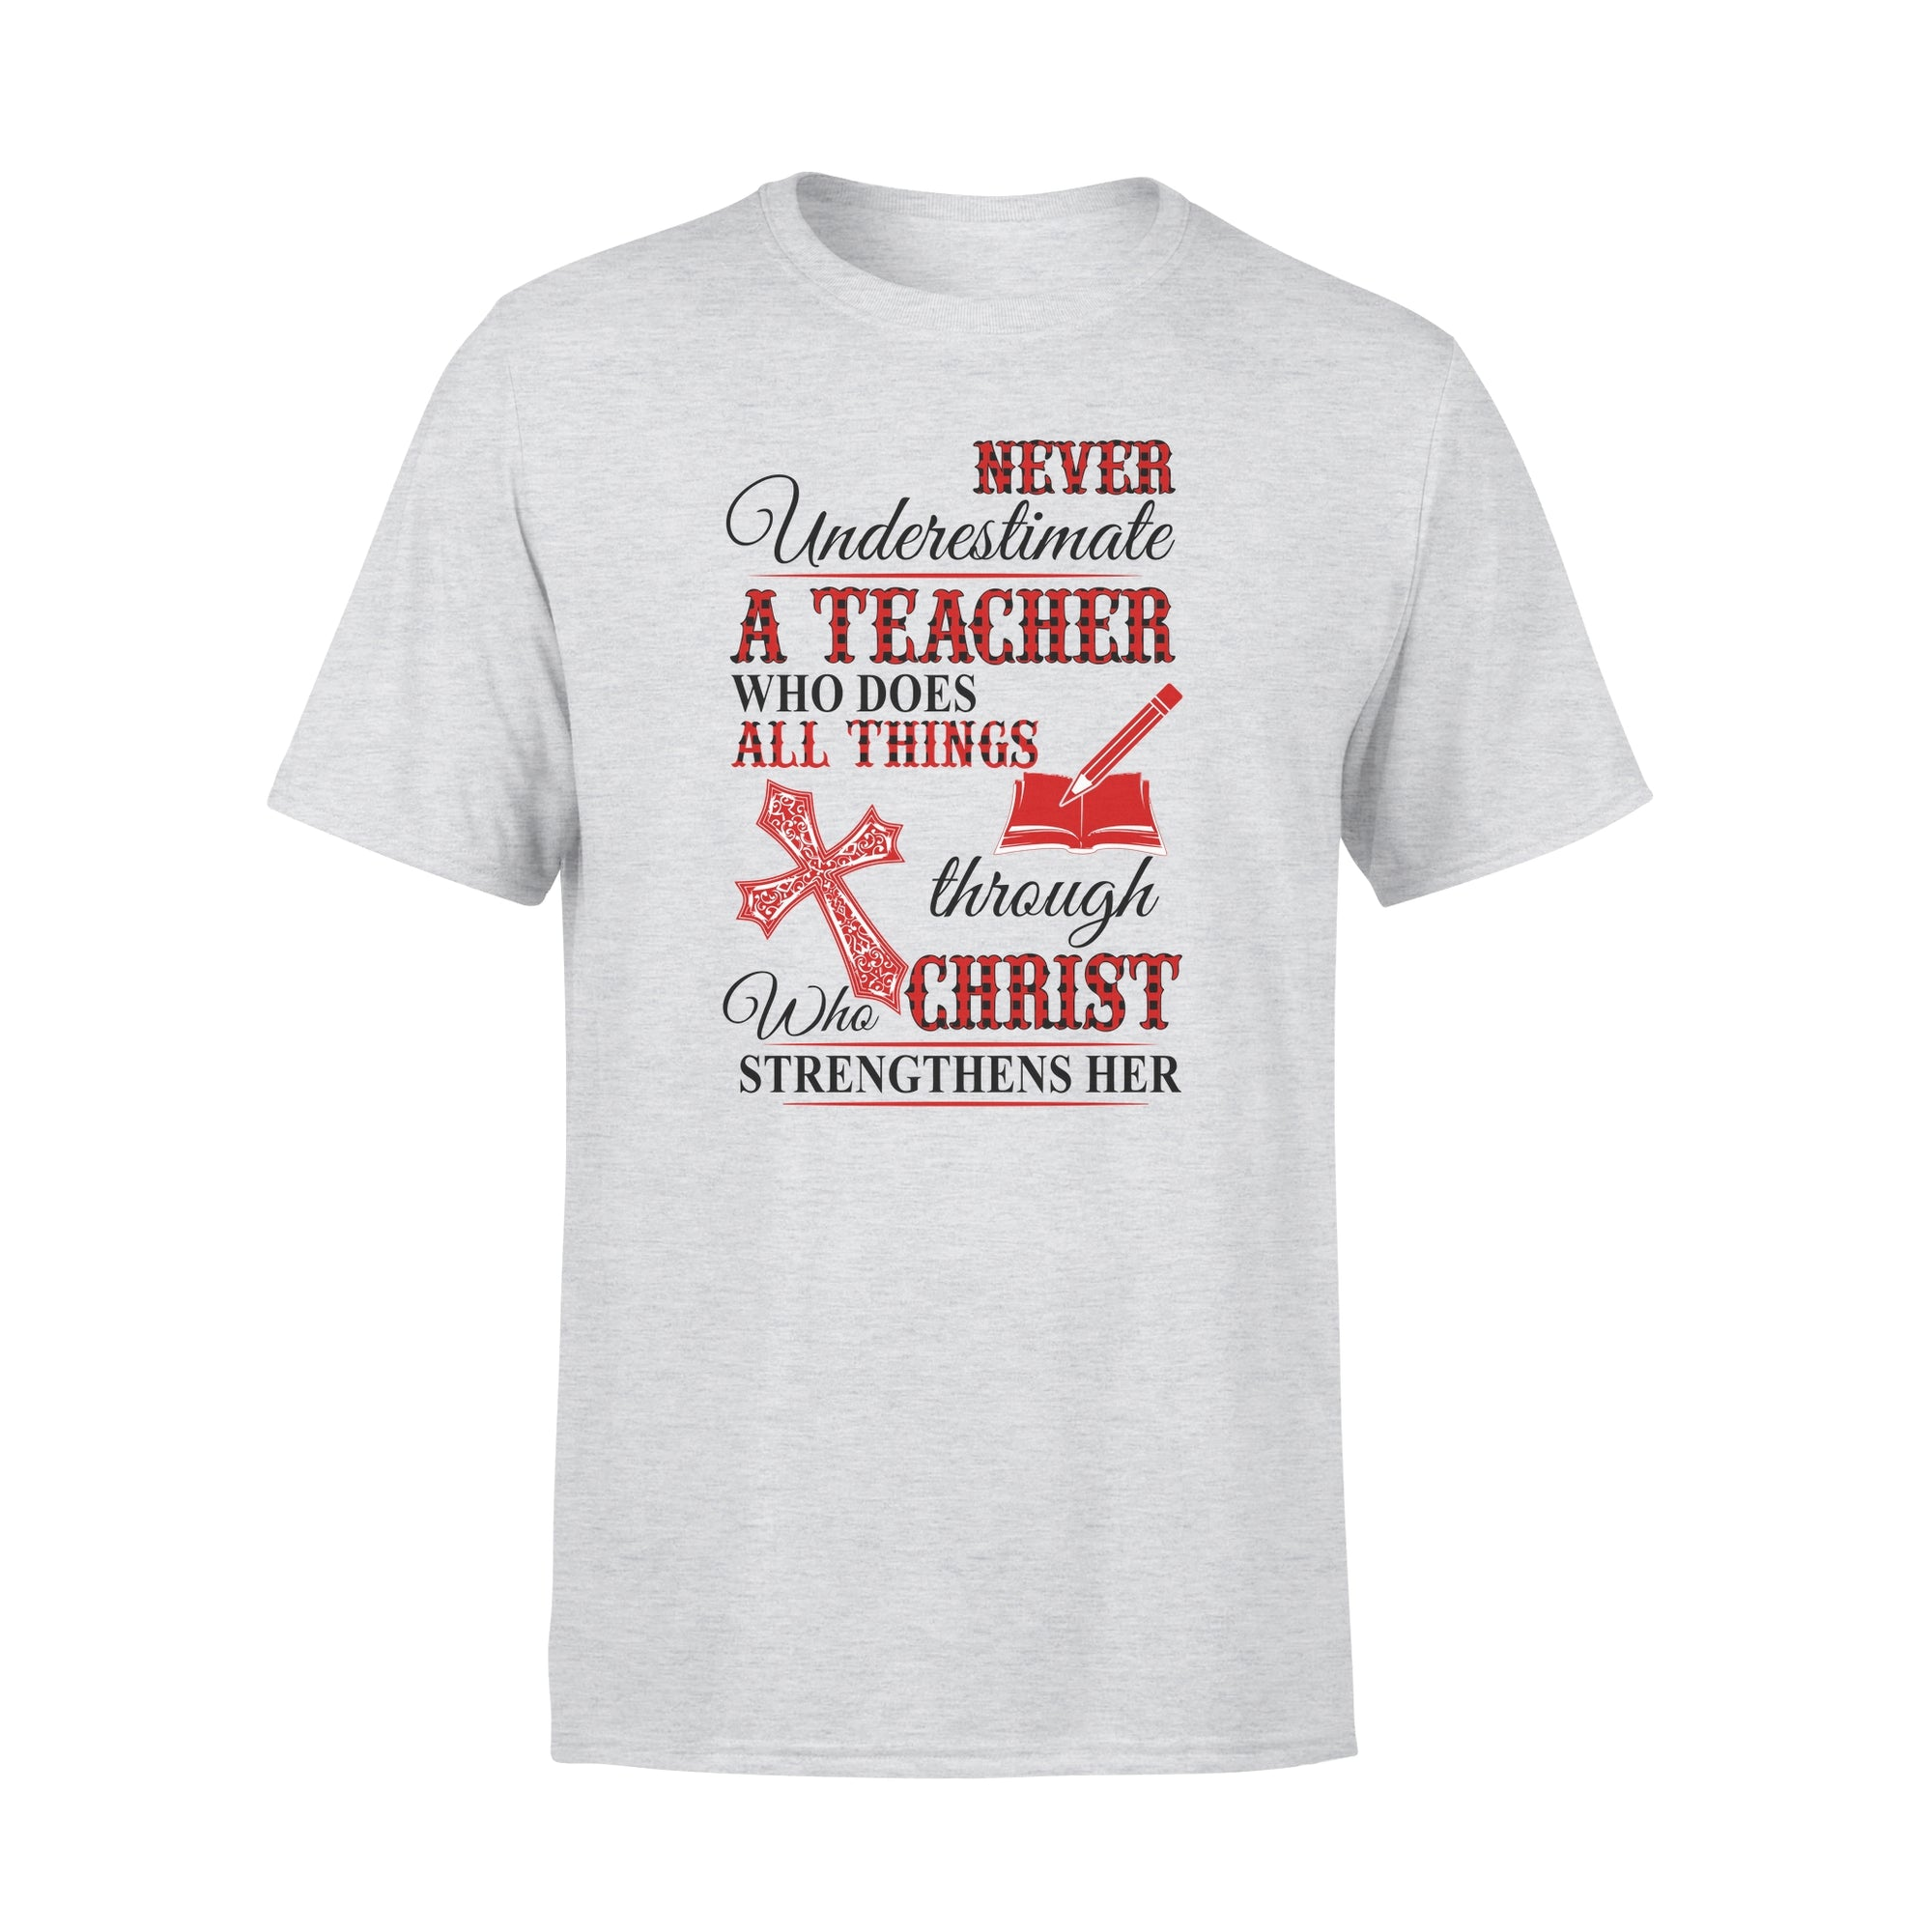 VIRA Premium Tee For Jesus Lovers & Awesome Teachers